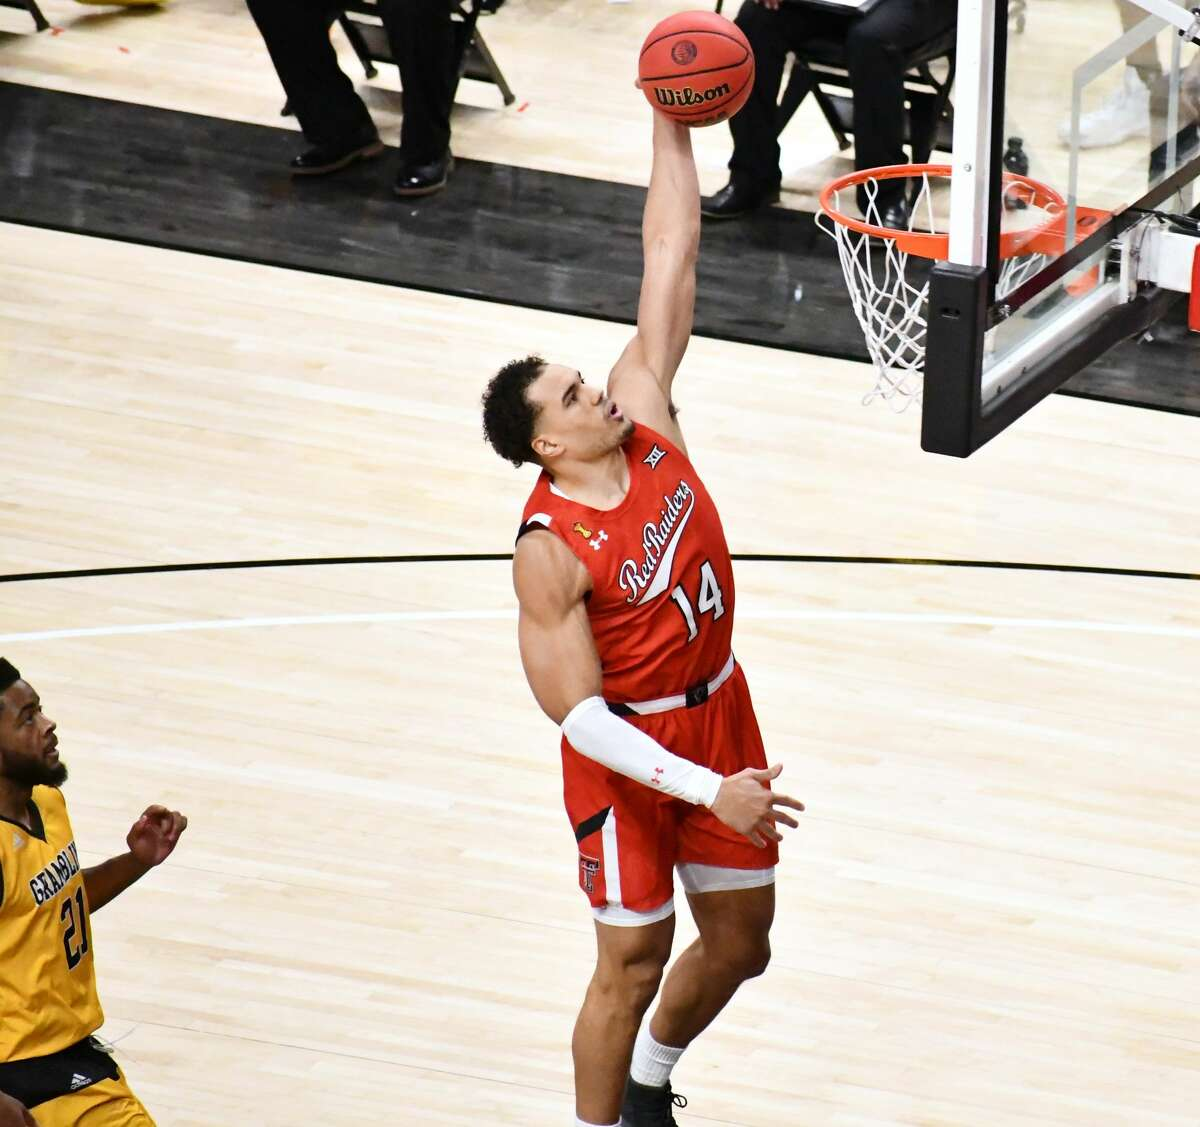 Texas Tech's Marcus Santos-Silva throws down a dunk during an 81-40 win over Grambling State on Nov. 6, 2020 in the United Supermarkets Arena in Lubbock.